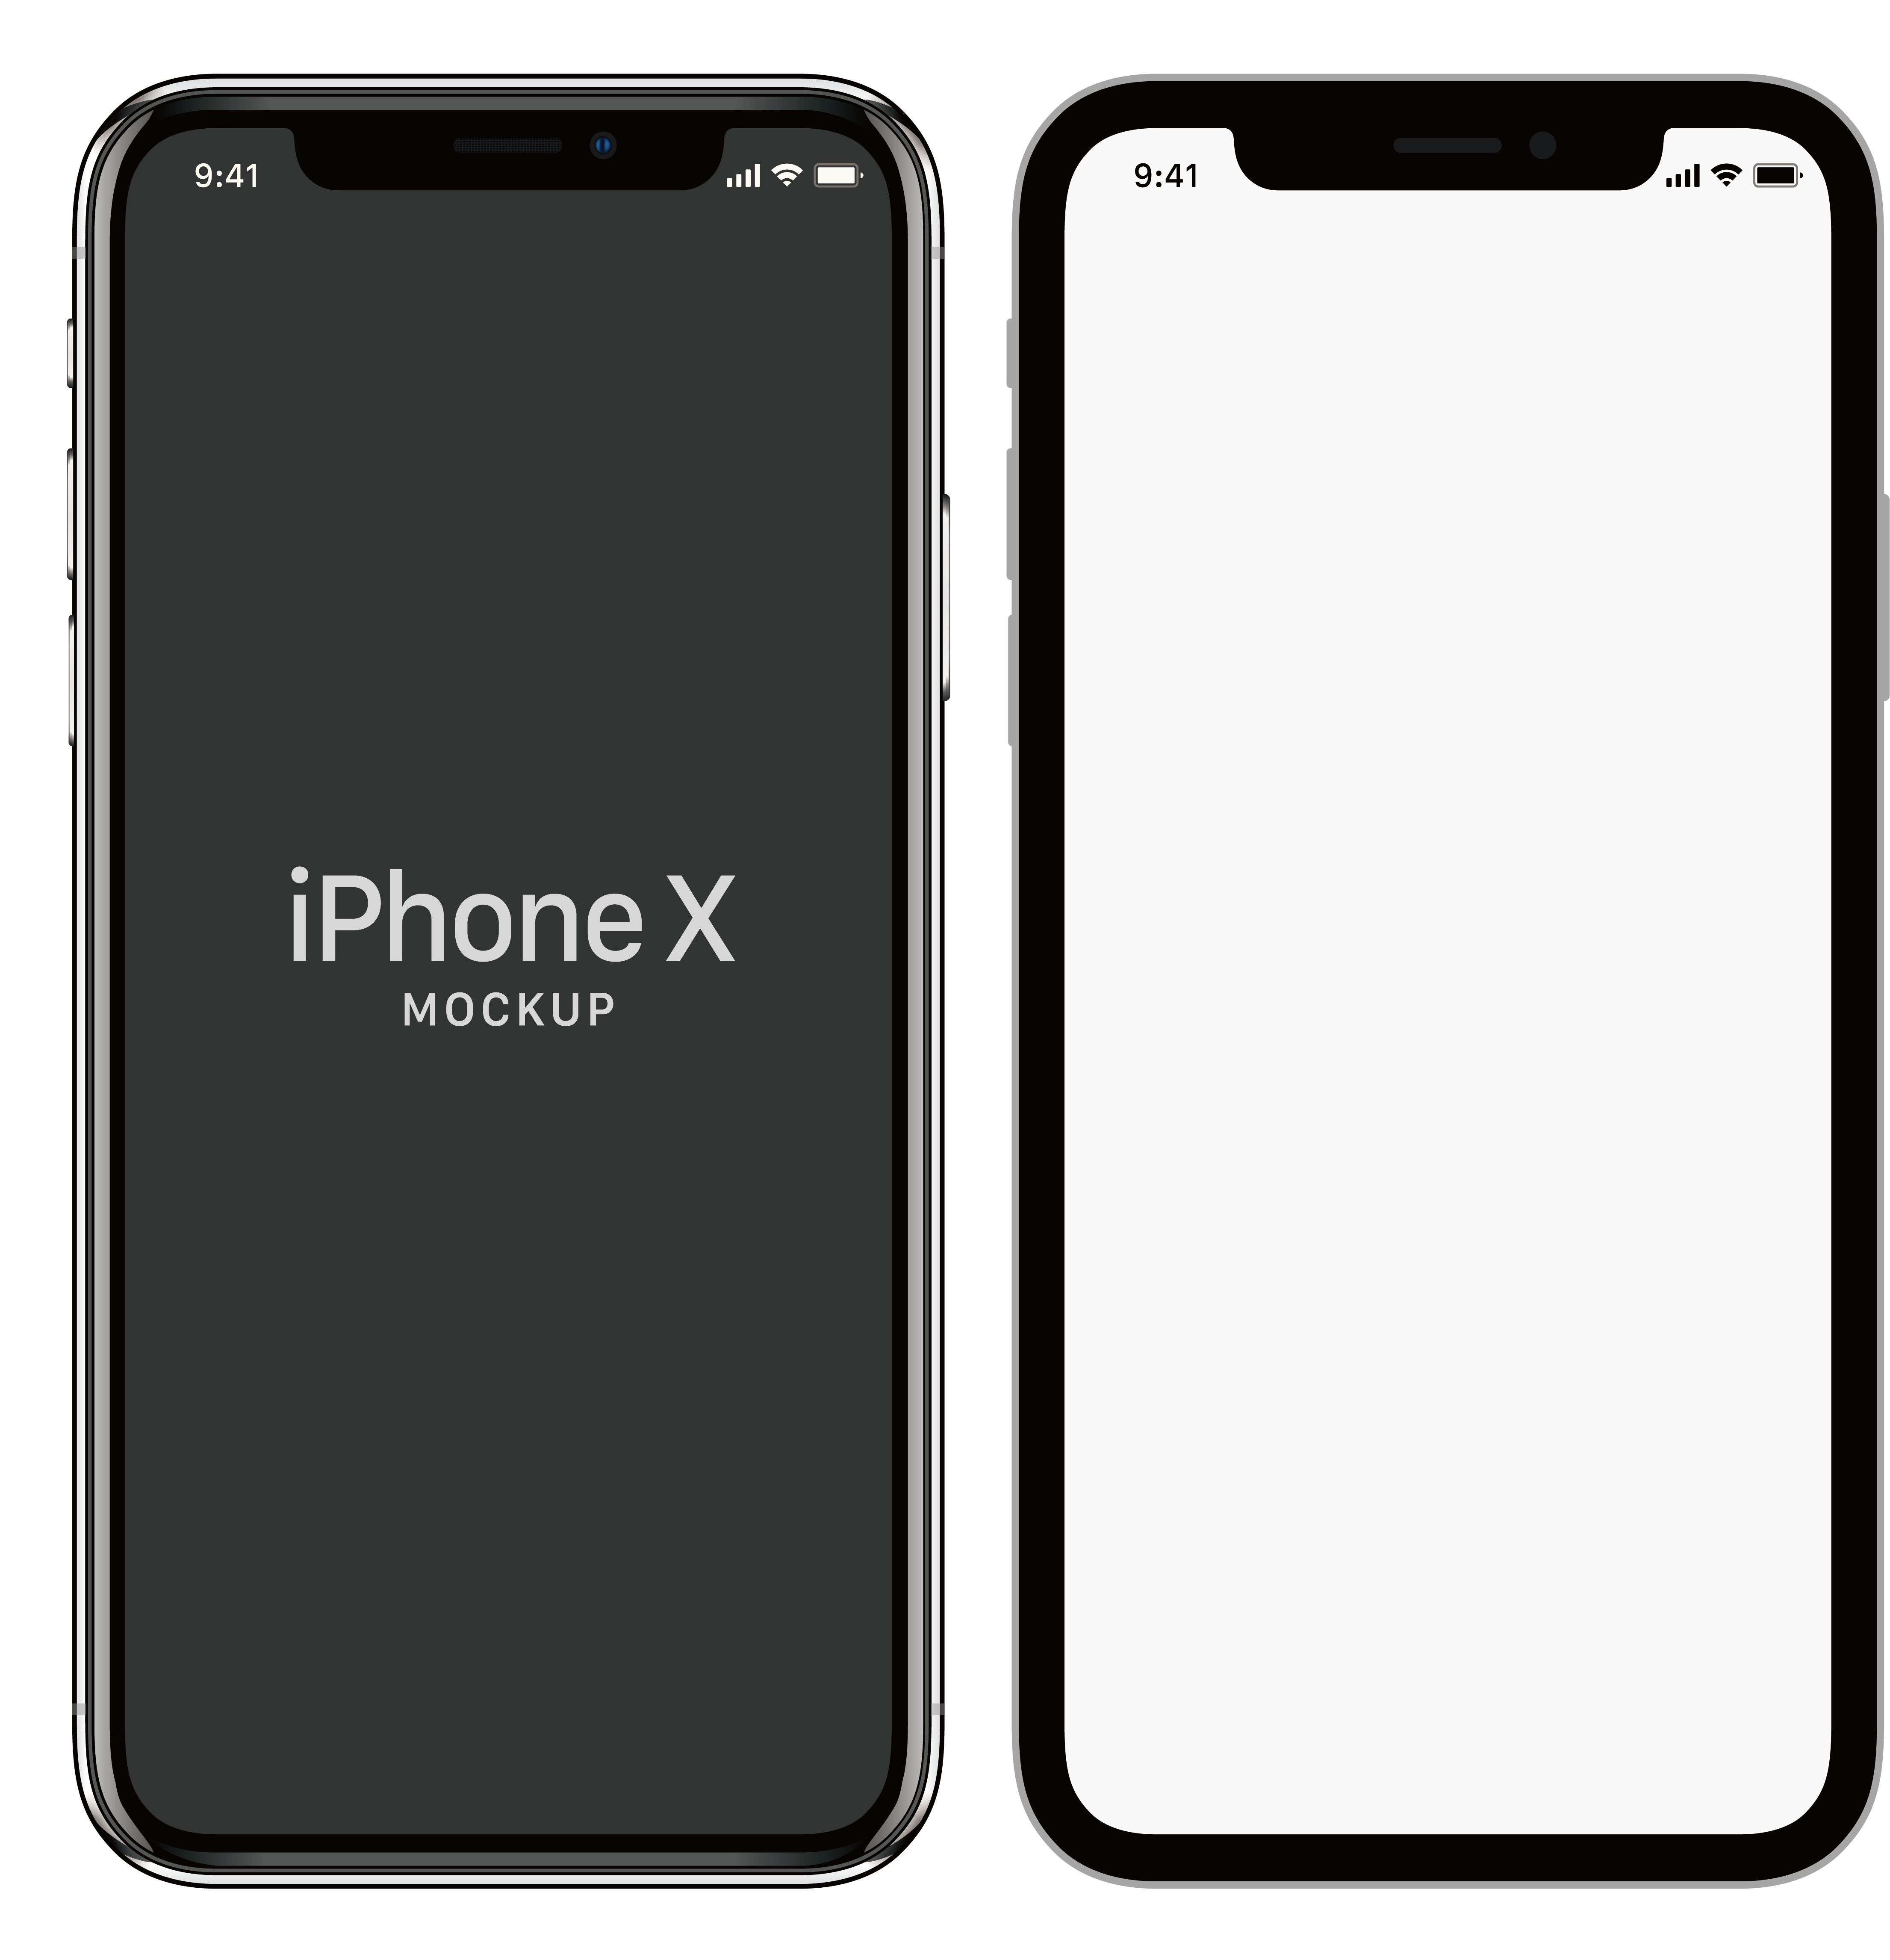 Black Cellphone Template Transparent Png Free Image By Rawpixel Com Eyeeyeview Iphone Mockup Free Phone Template Iphone Mockup